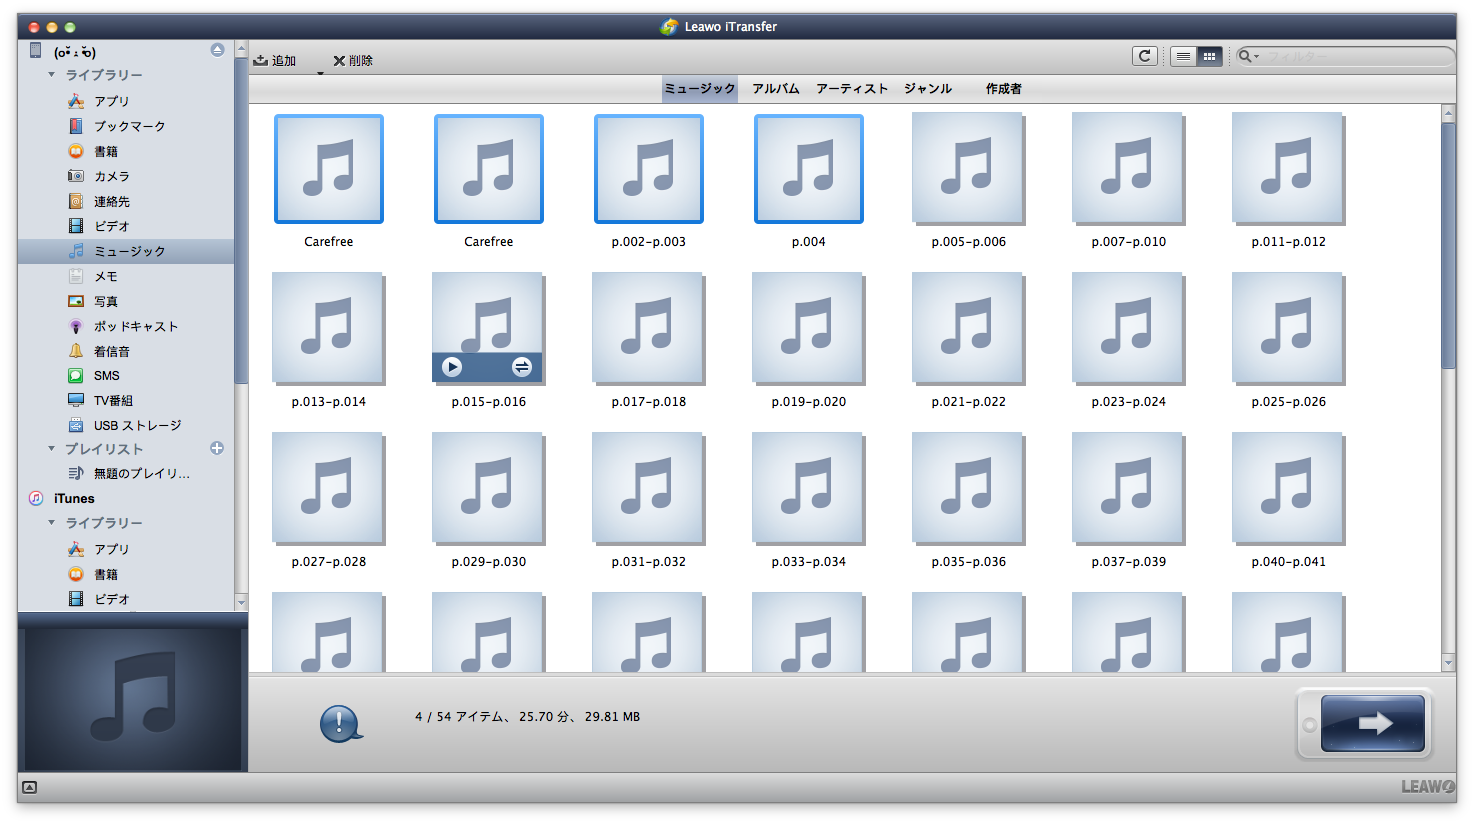 Add Music to iPhone Device from Mac